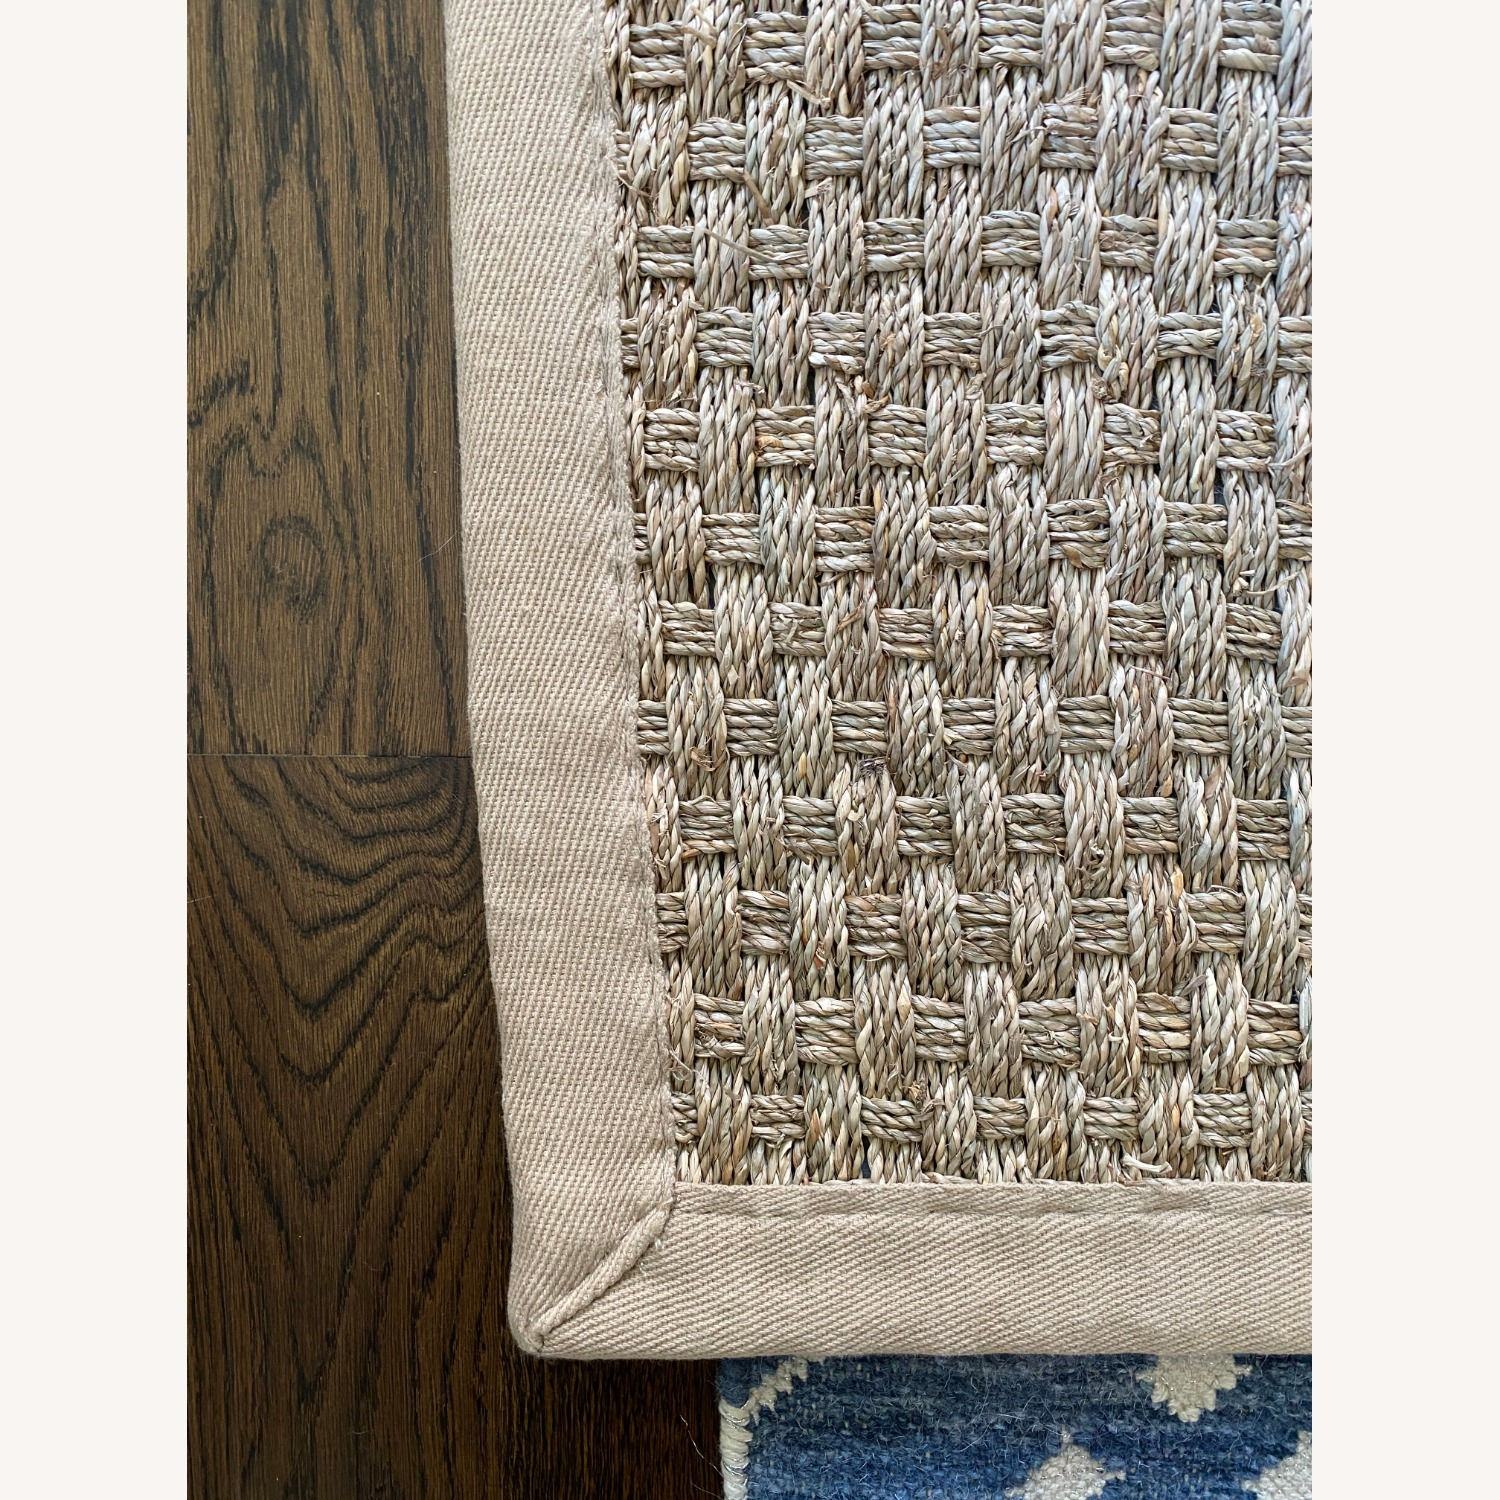 Safavieh Natural Seagrass Area Rug - image-2